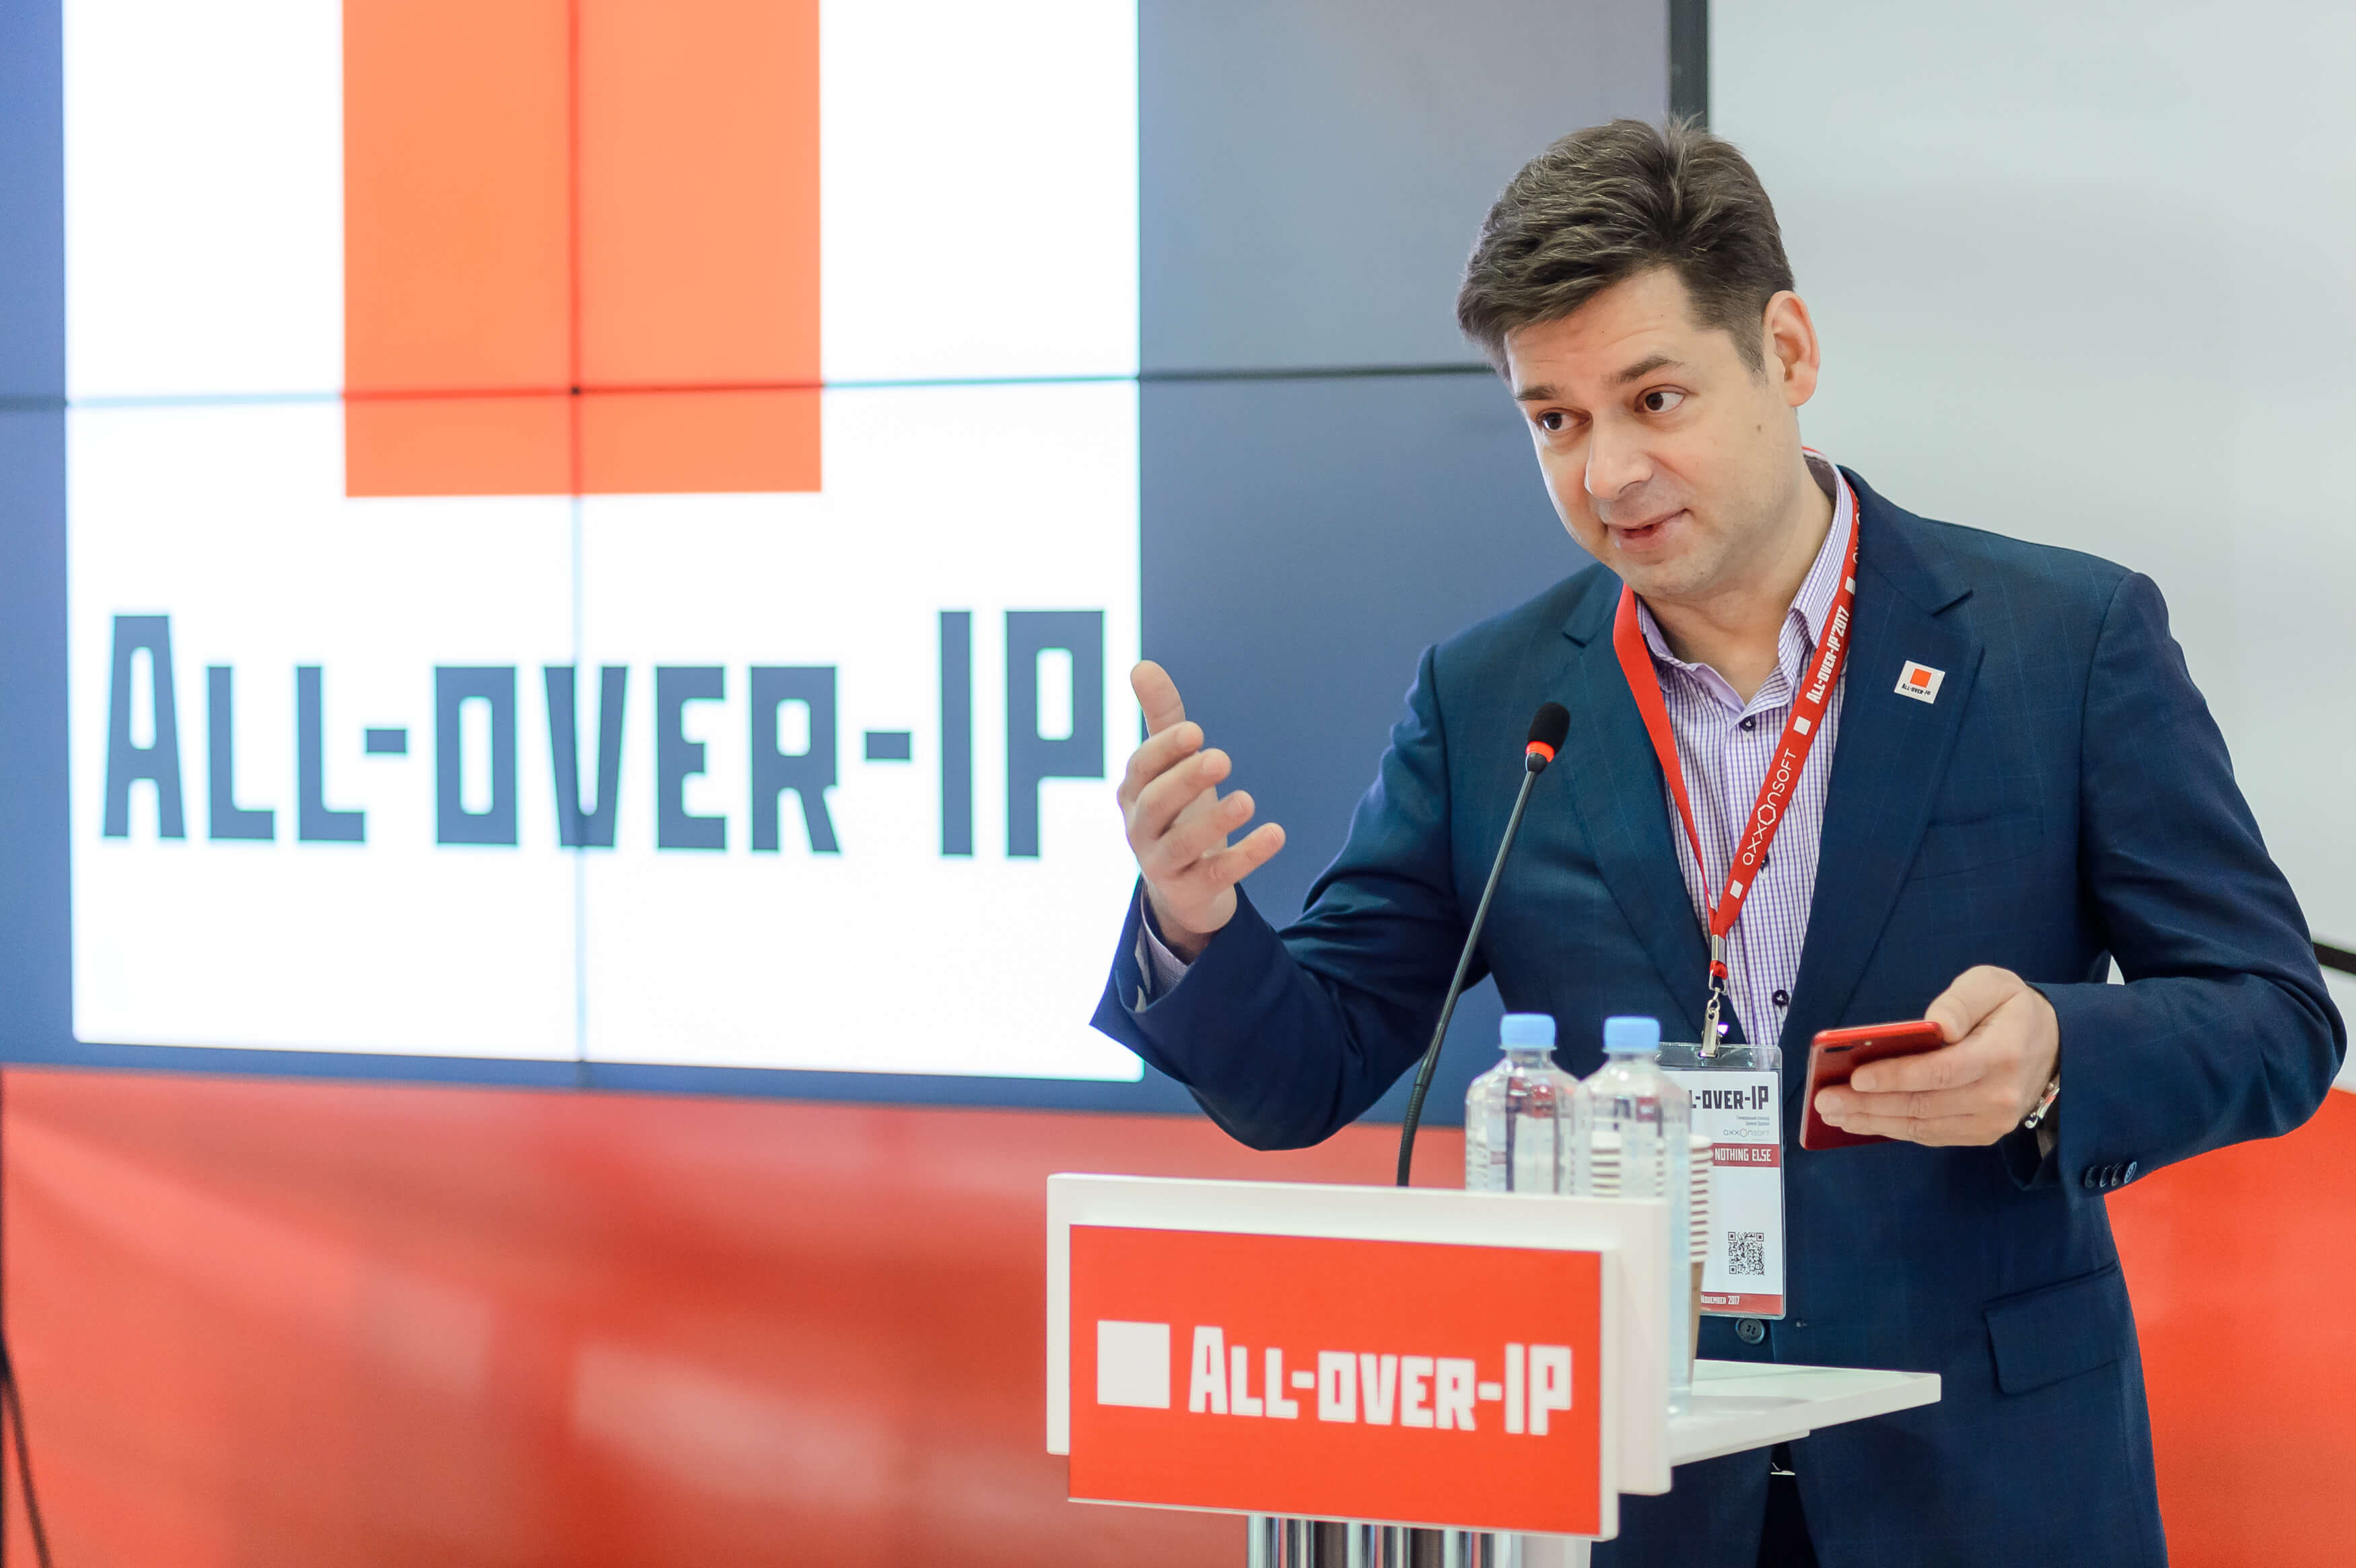 All-over-IP 2017: The Future Mapped Out in Moscow